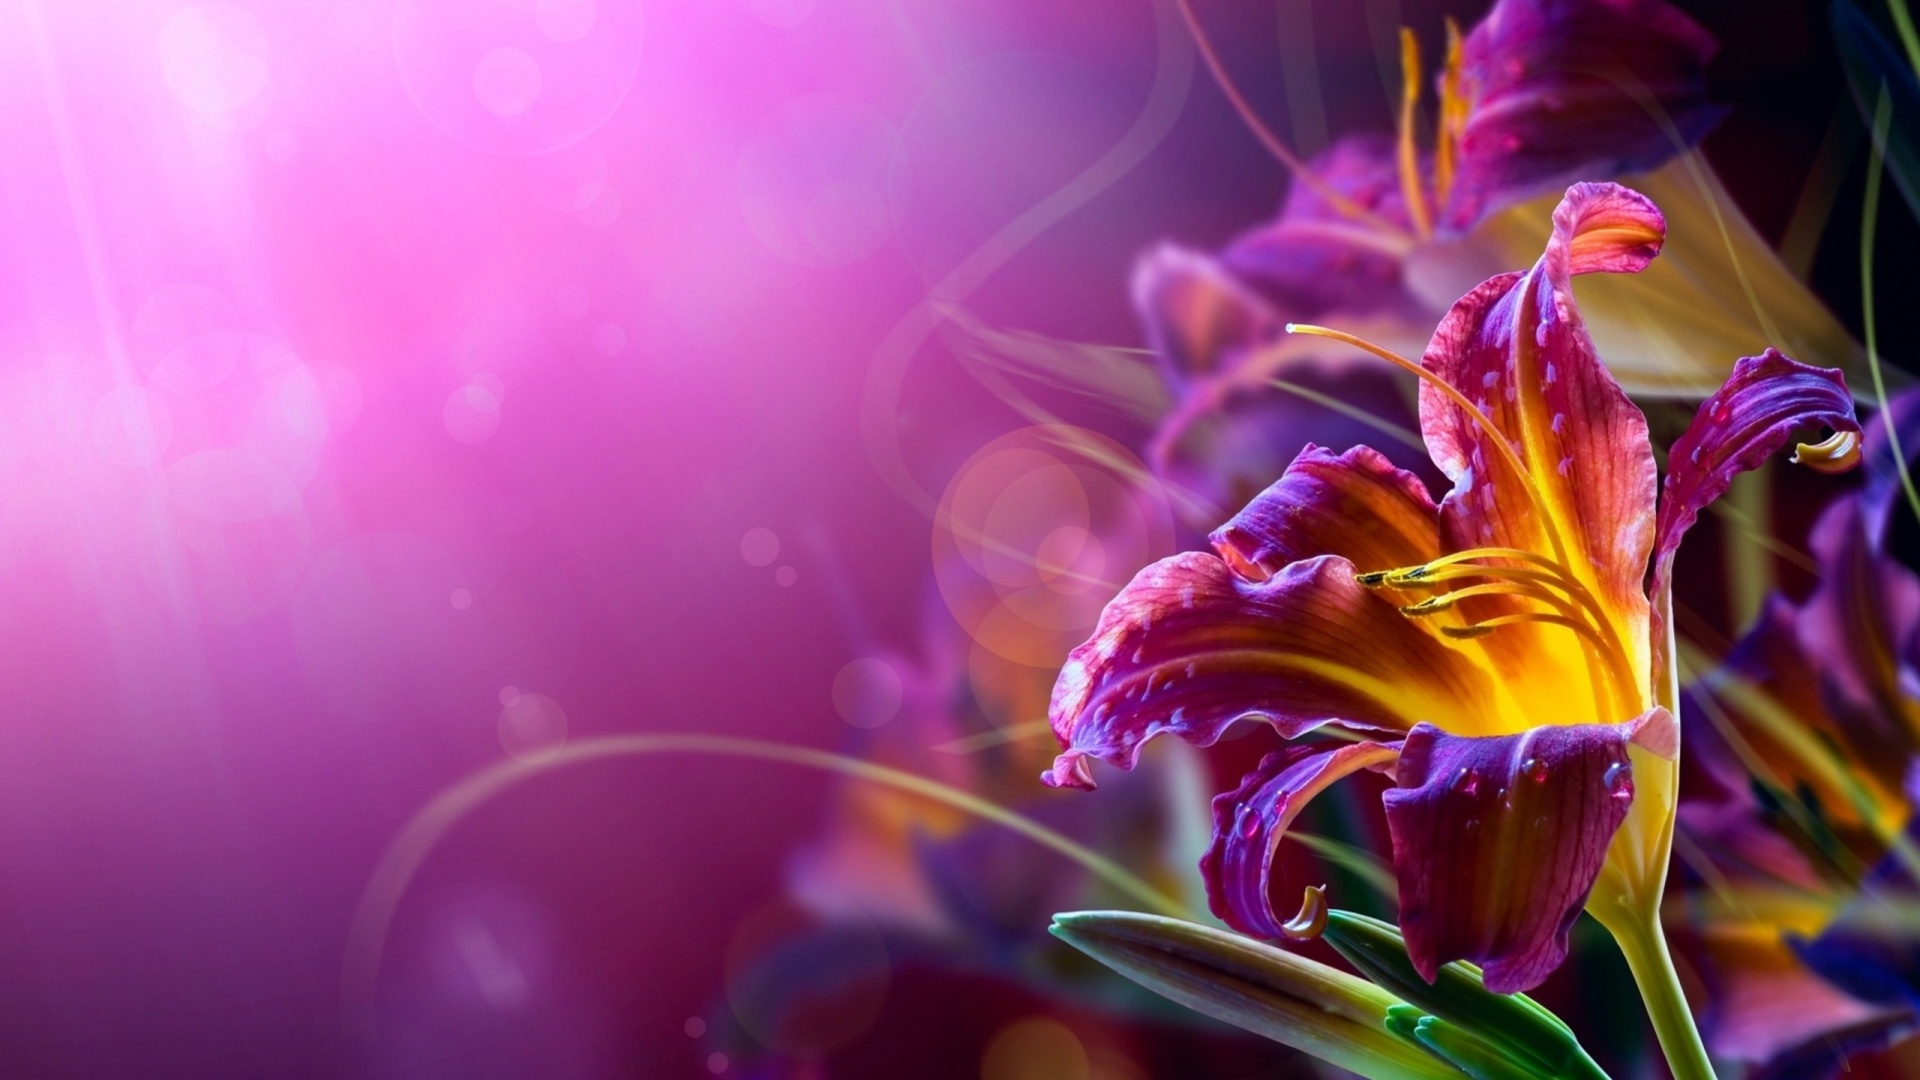 Wallpapers With Your Name - Abstract Flower Backgrounds , HD Wallpaper & Backgrounds